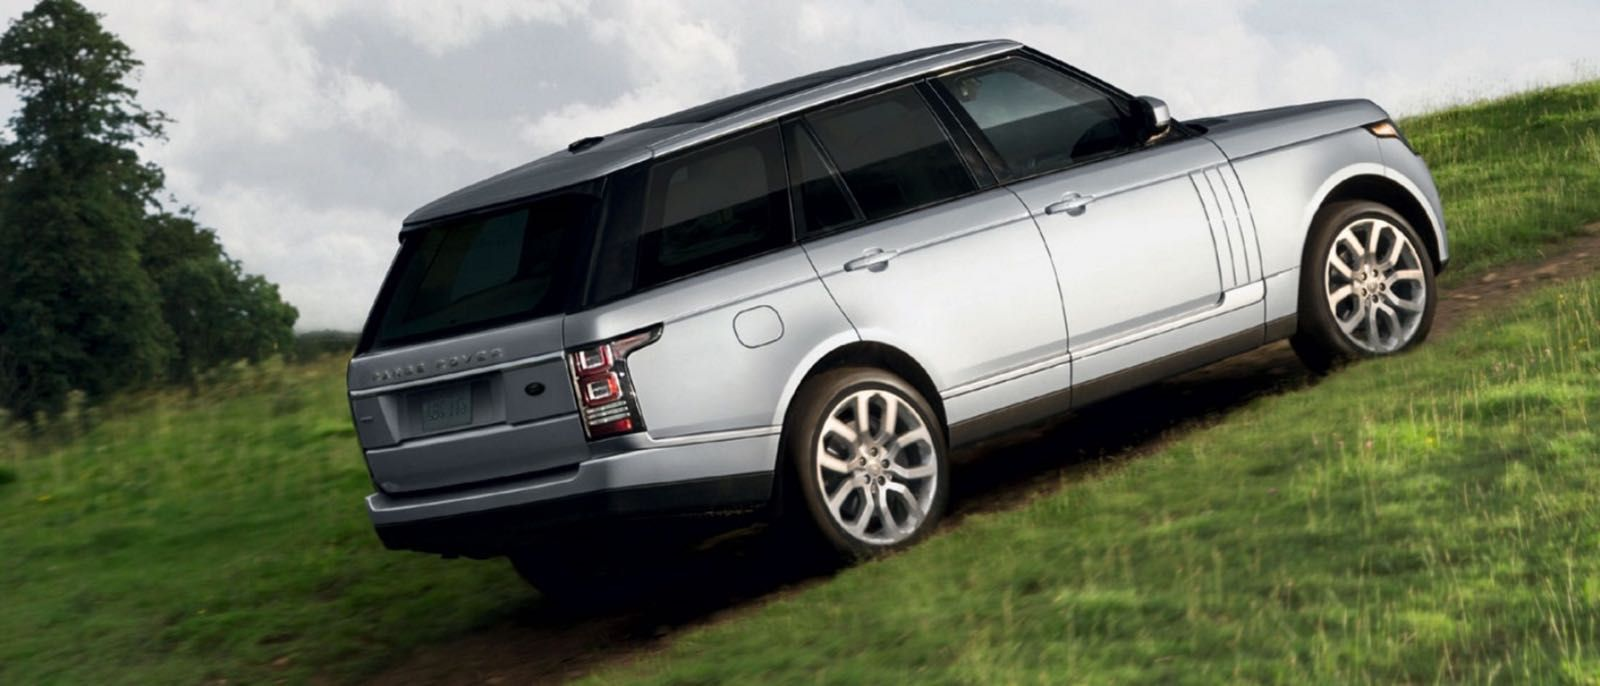 The 2016 Land Rover Range Rover and 2016 Volvo XC90 are